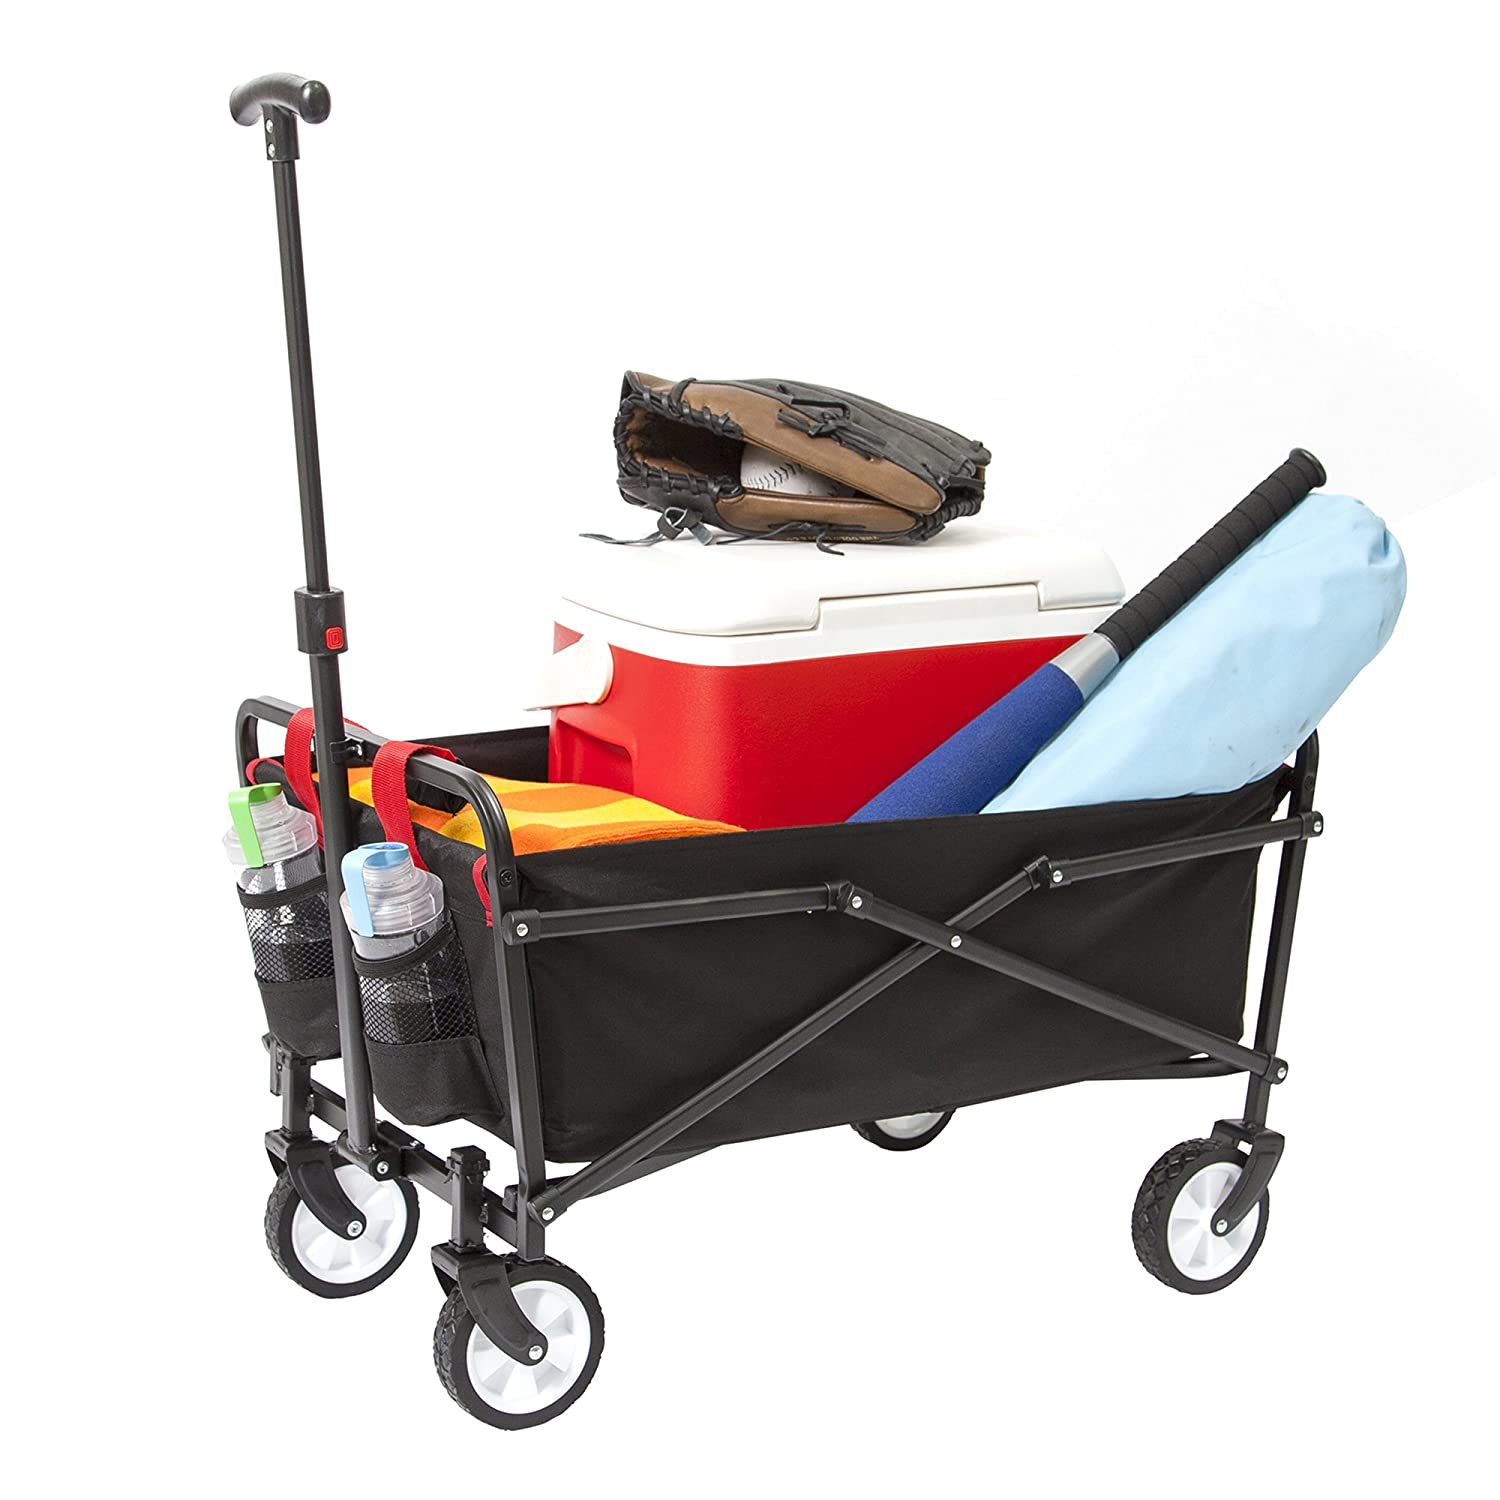 The Best Folding Wagon 2